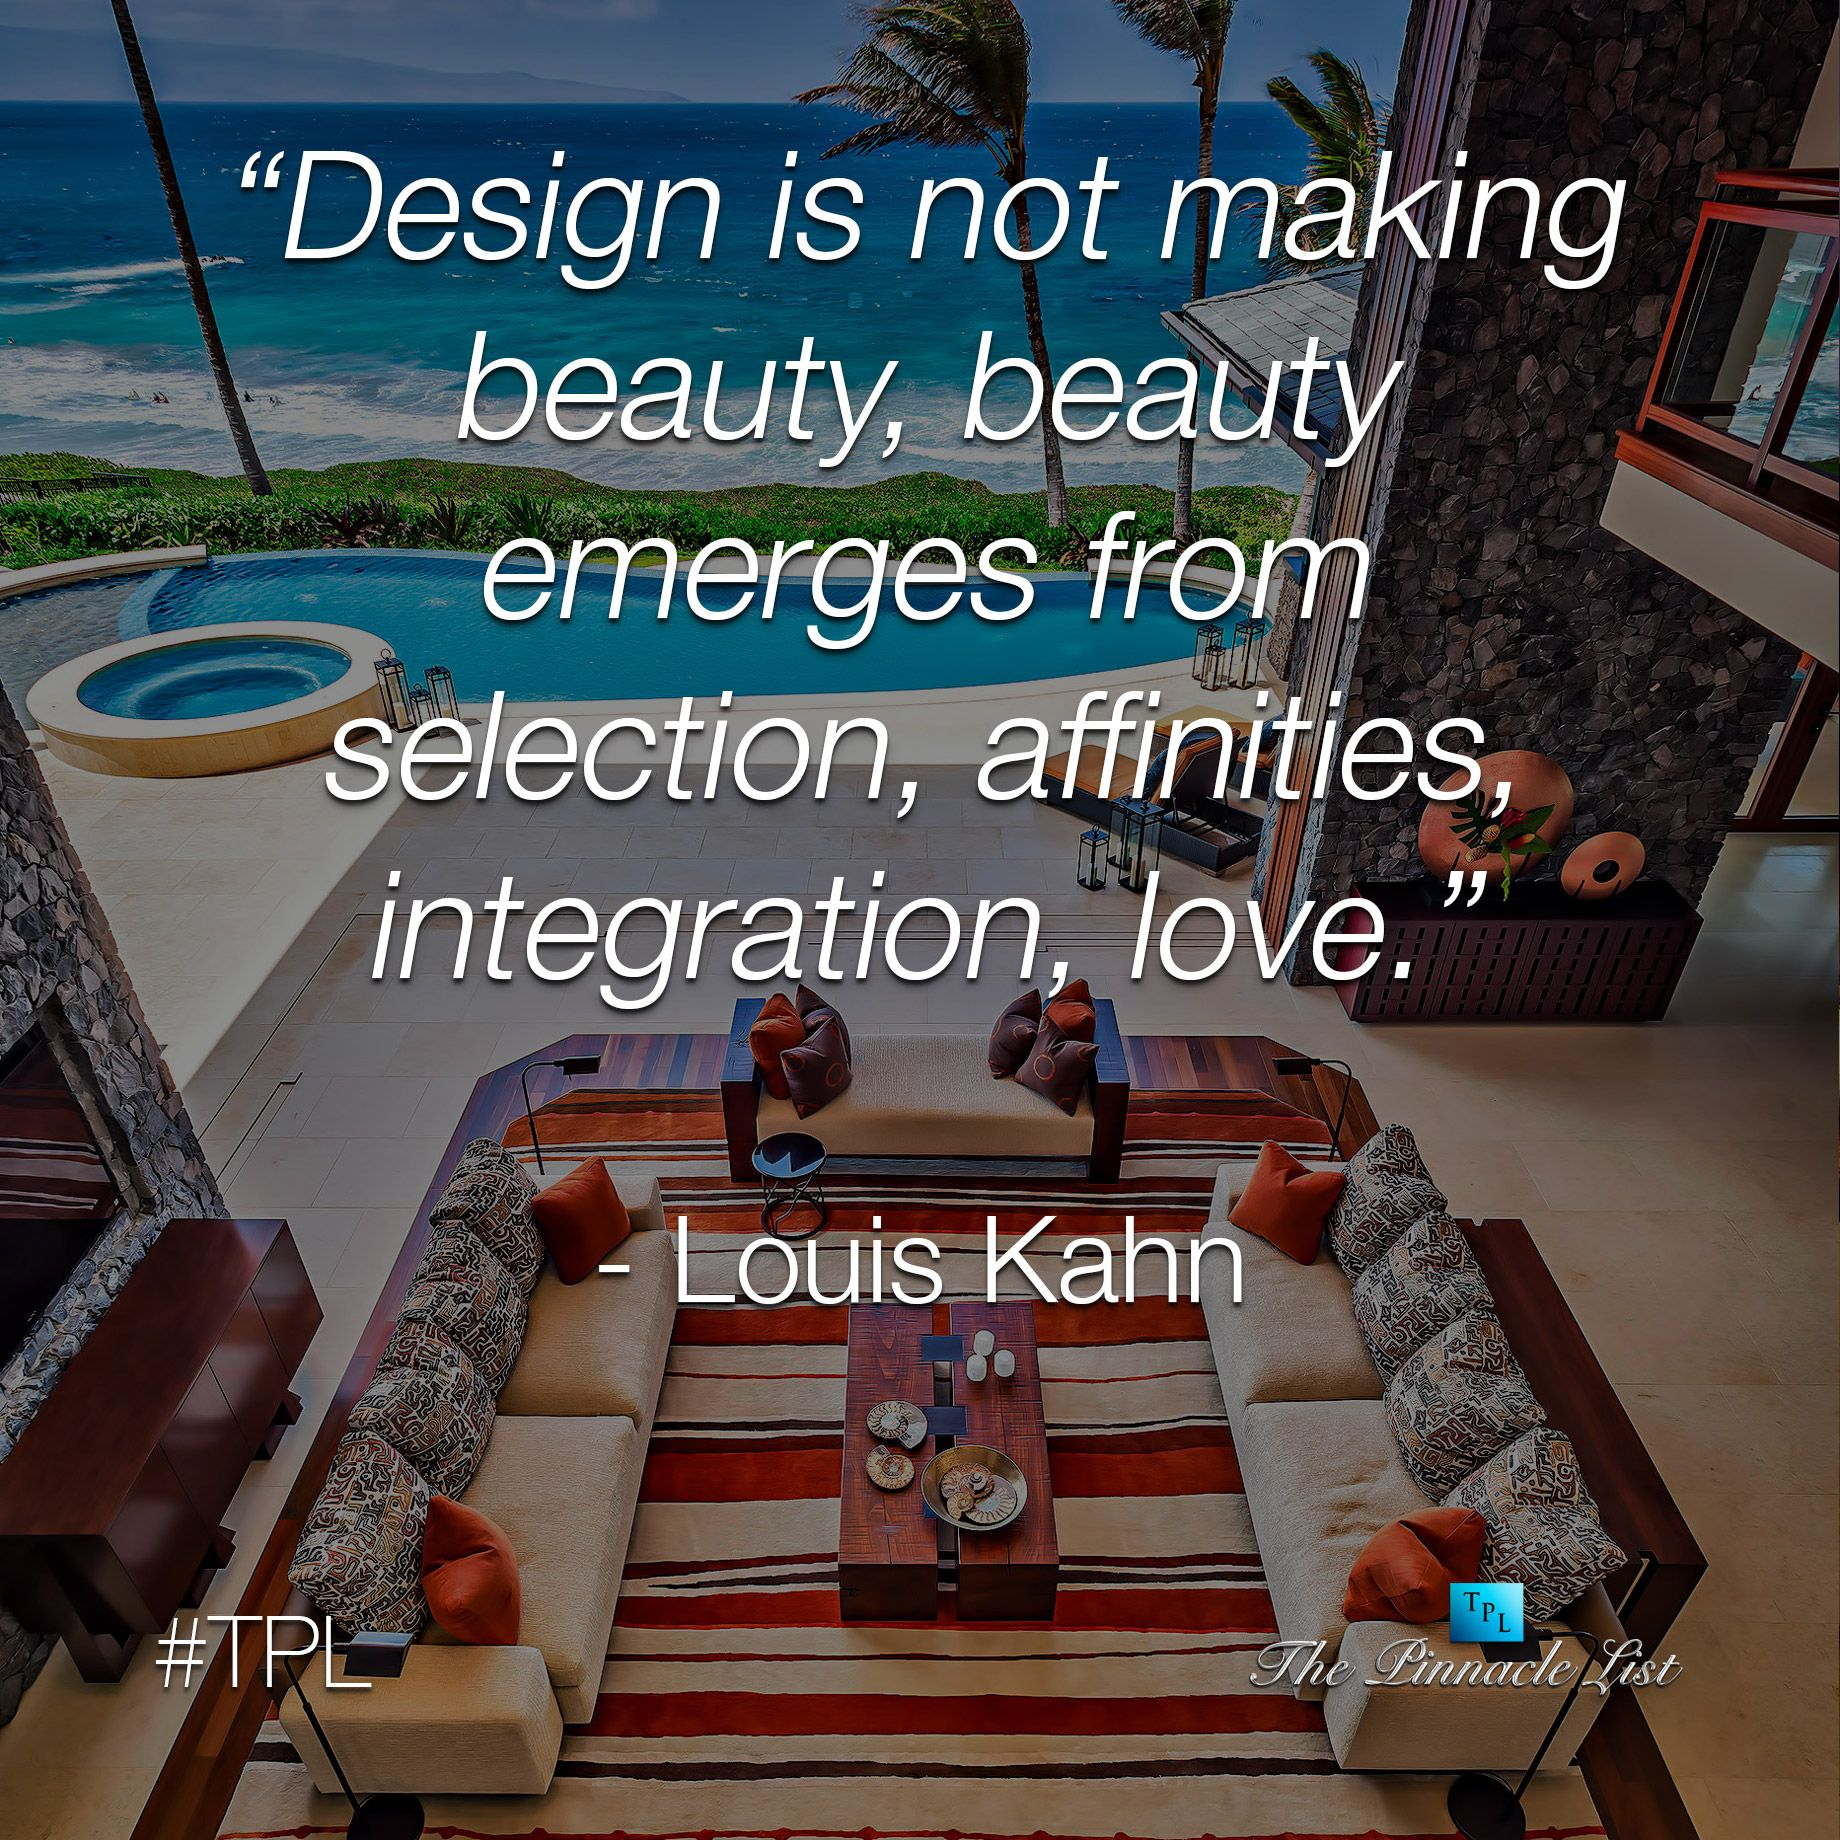 The Integration of Natural Beauty to Design Beauty with Love ➤ http://thepl.me/1pxcc4B